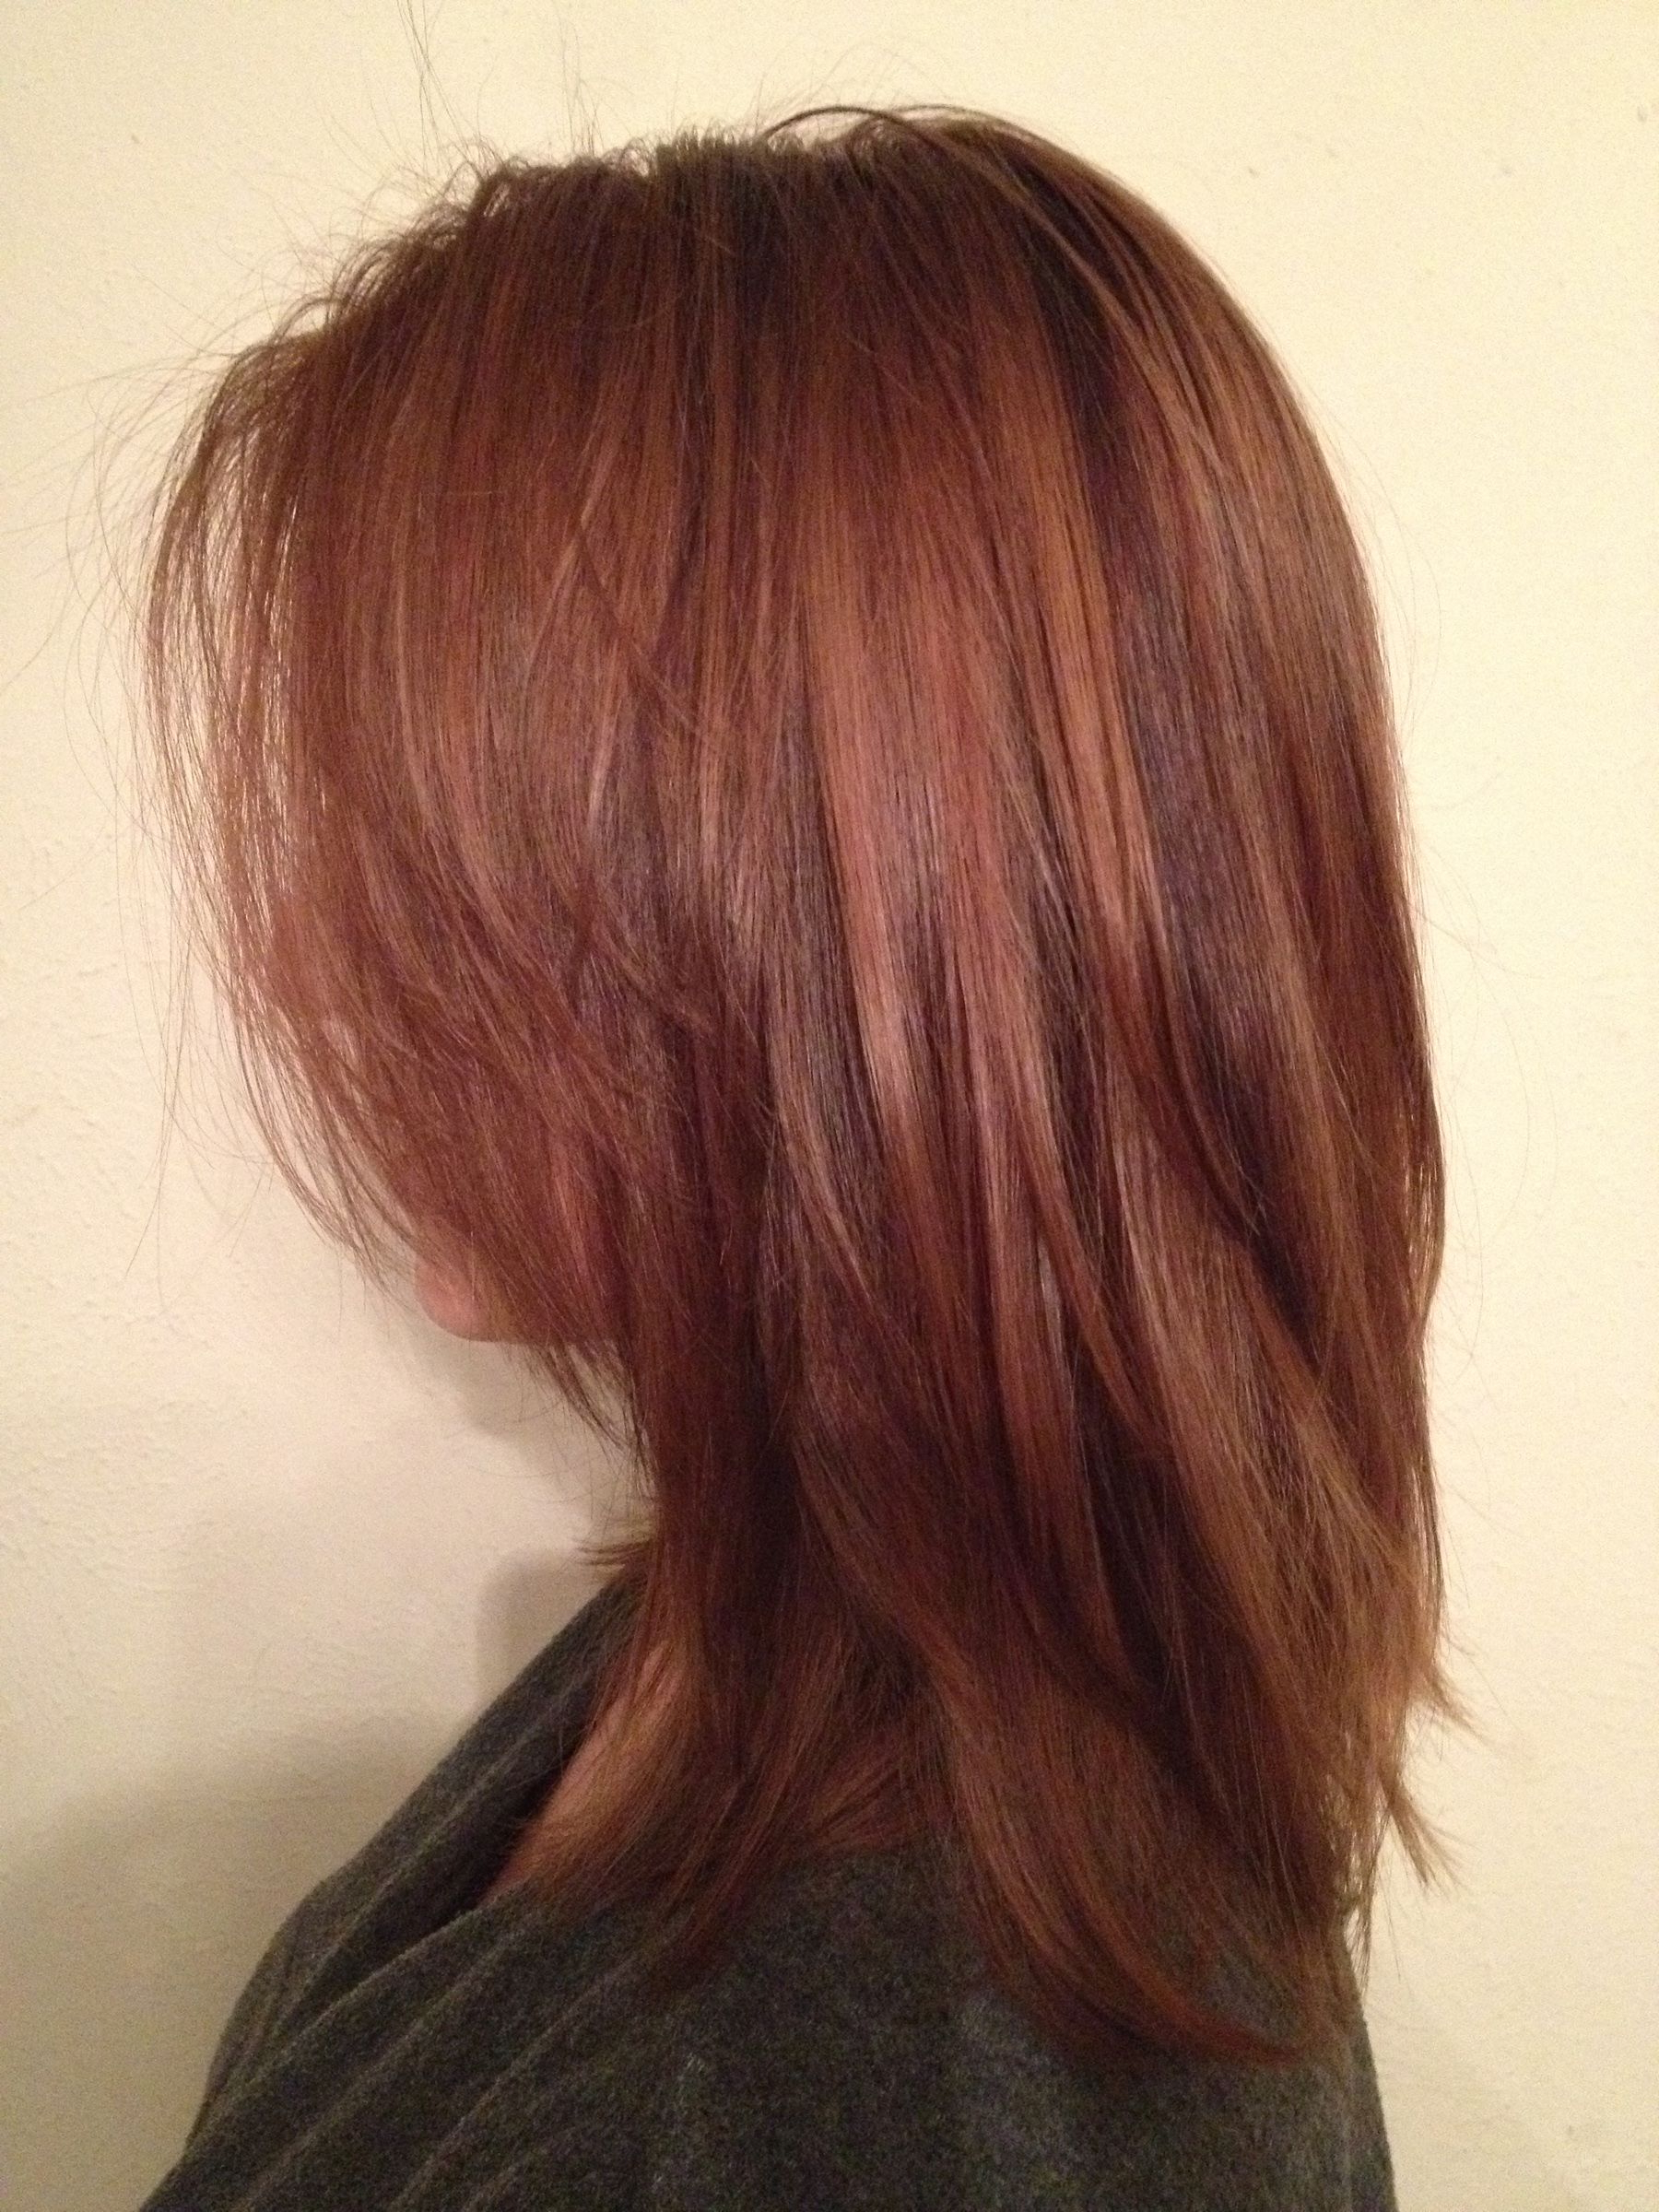 Pictures Of Auburn Hair With Highlights And Lowlights – Hairs With Soft Auburn Look Hairstyles (View 3 of 20)